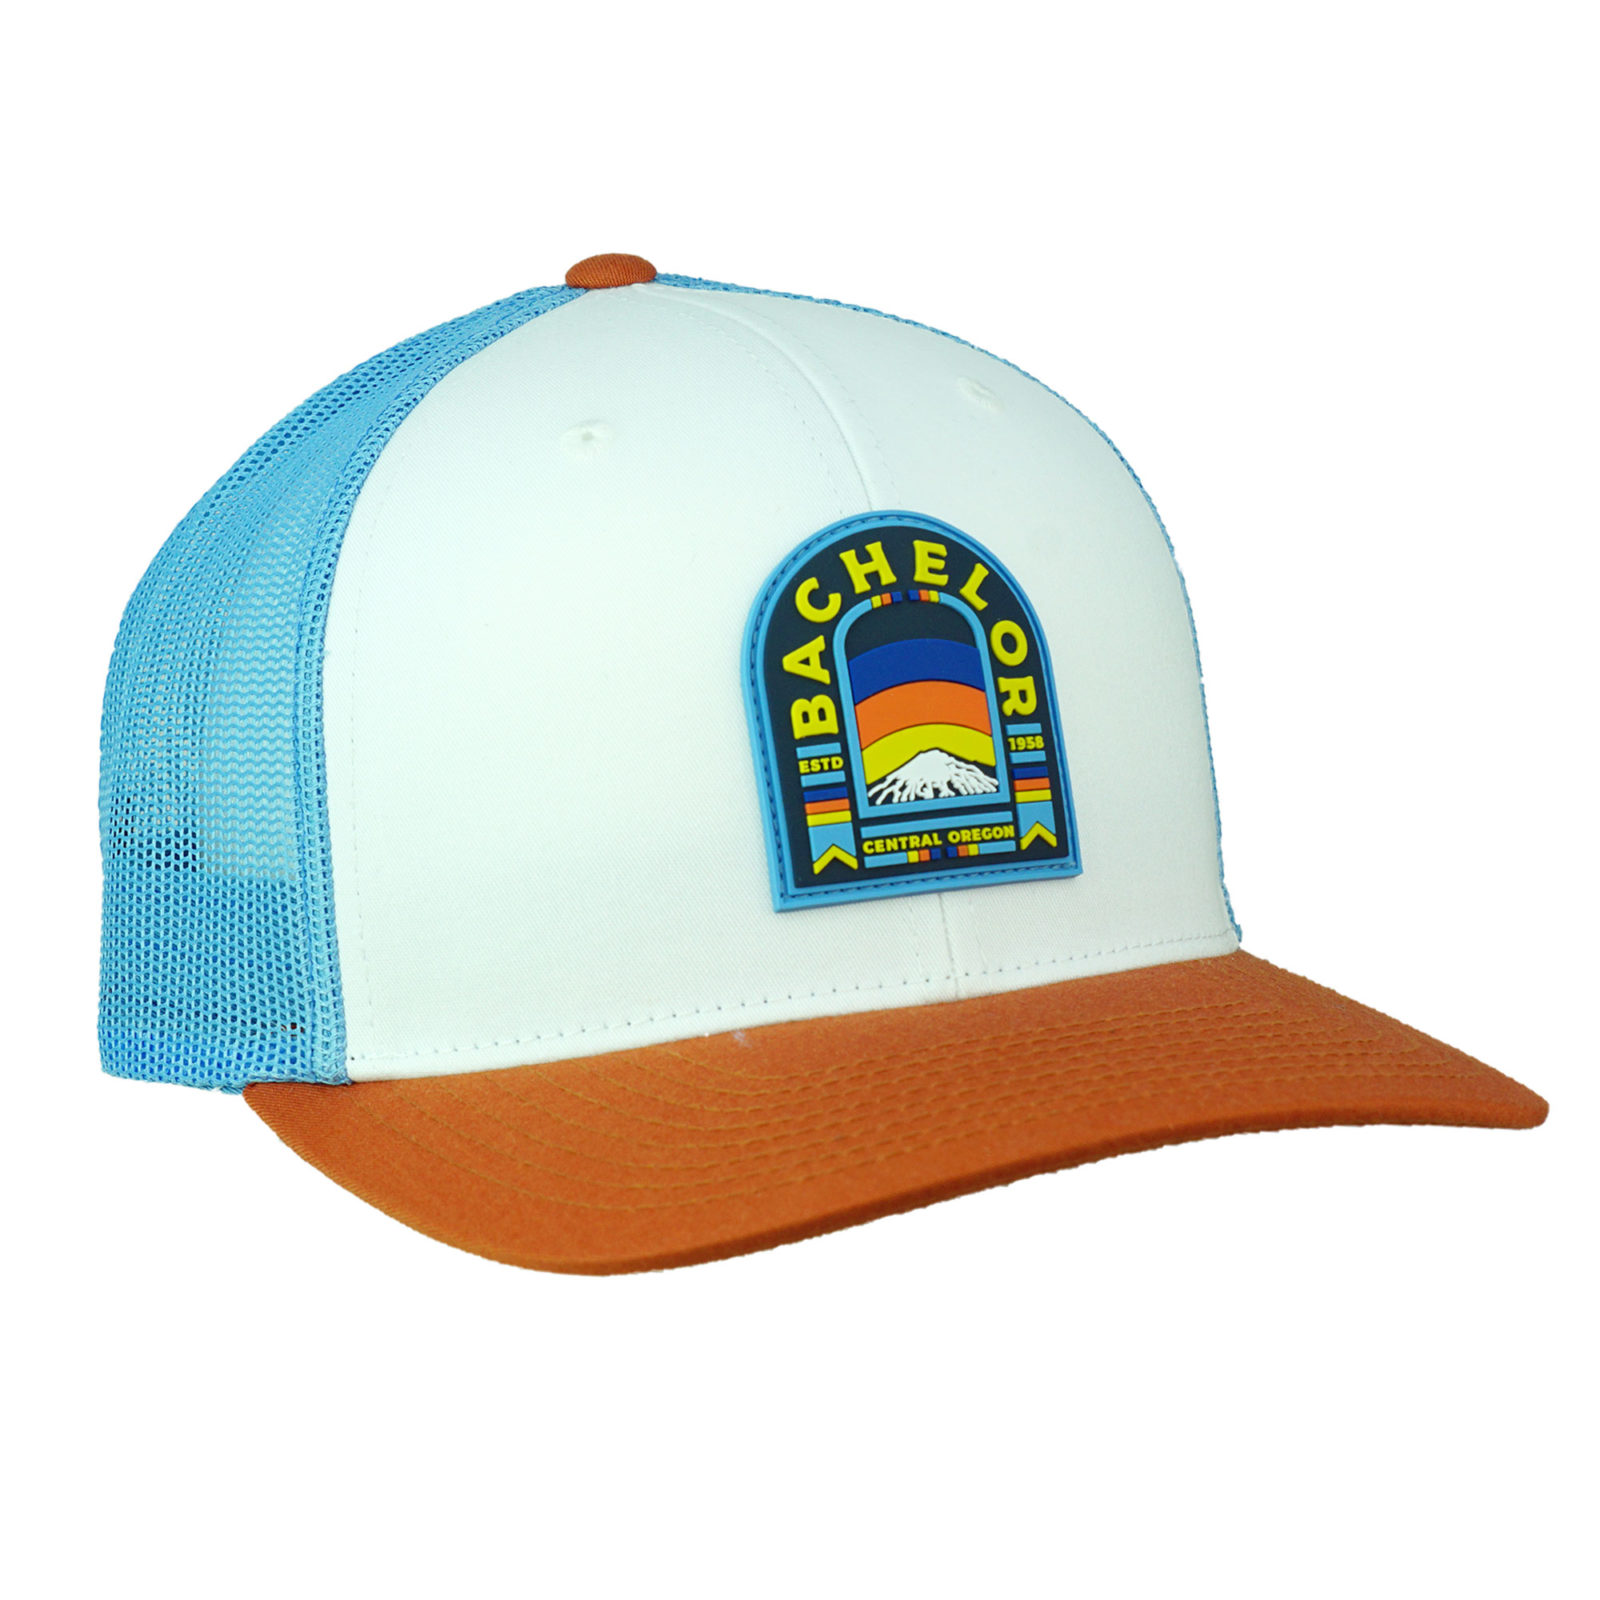 IZM_Bachelor_Hat_White-Blue